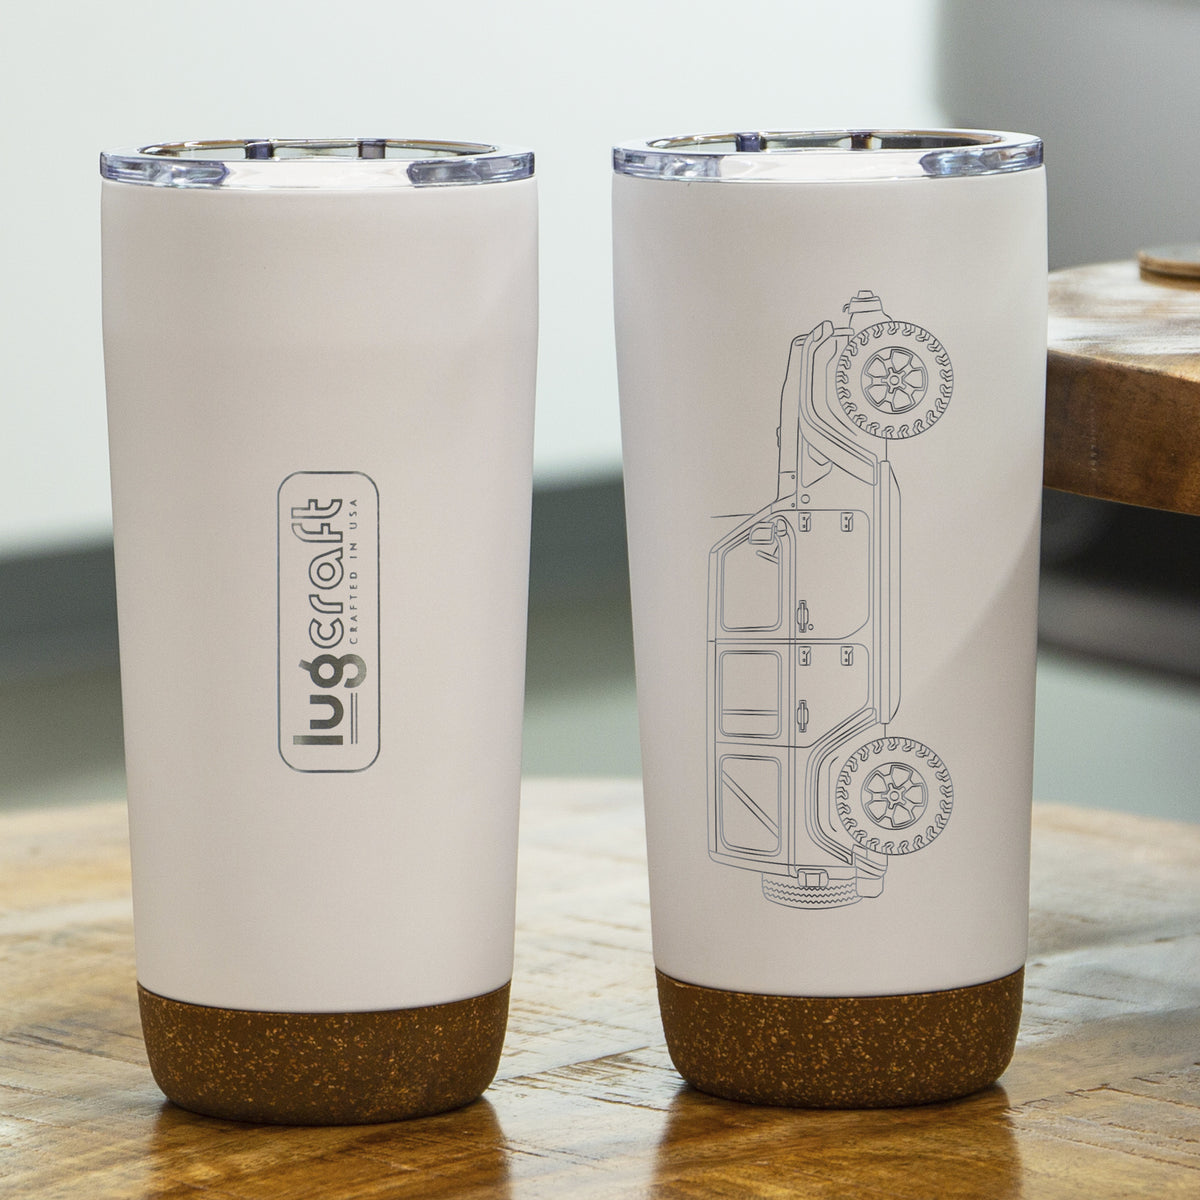 Jeep Wrangler 4 Door Side Profile Insulated Stainless Steel Coffee Tumbler - 20 oz